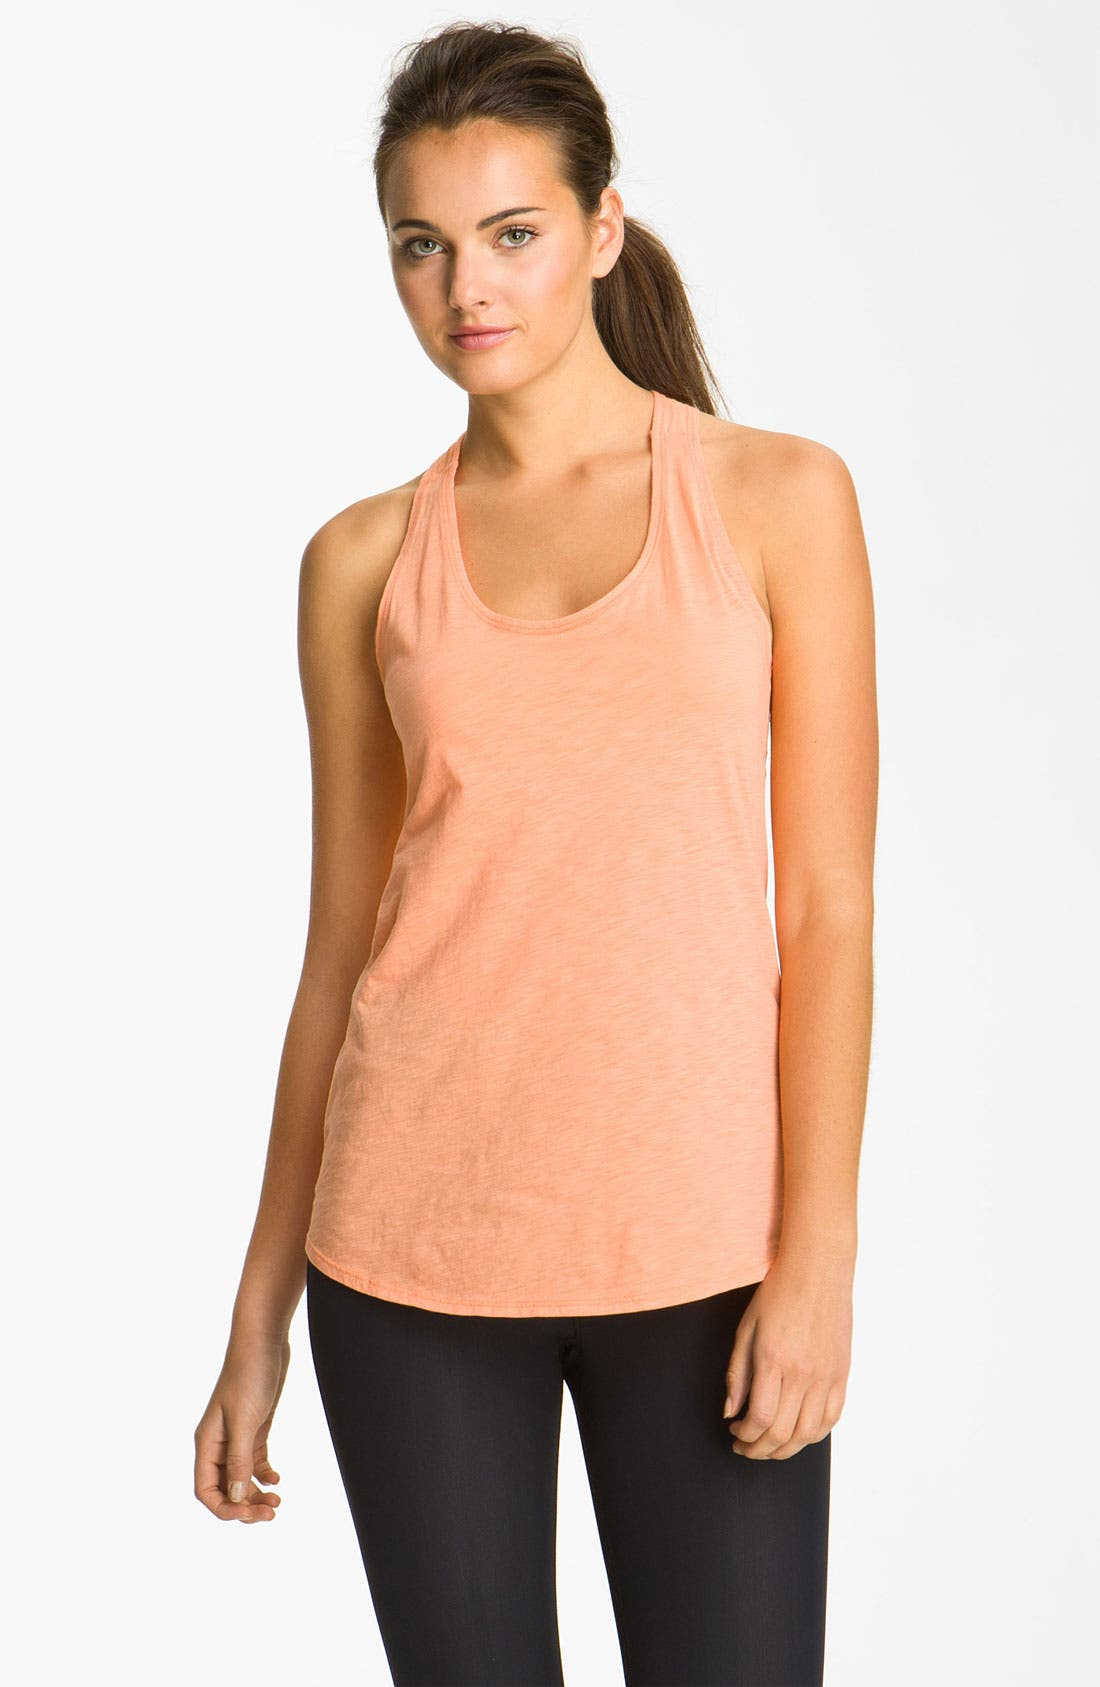 Alternate Image 1 Selected - Under Armour 'Twisty' Tank